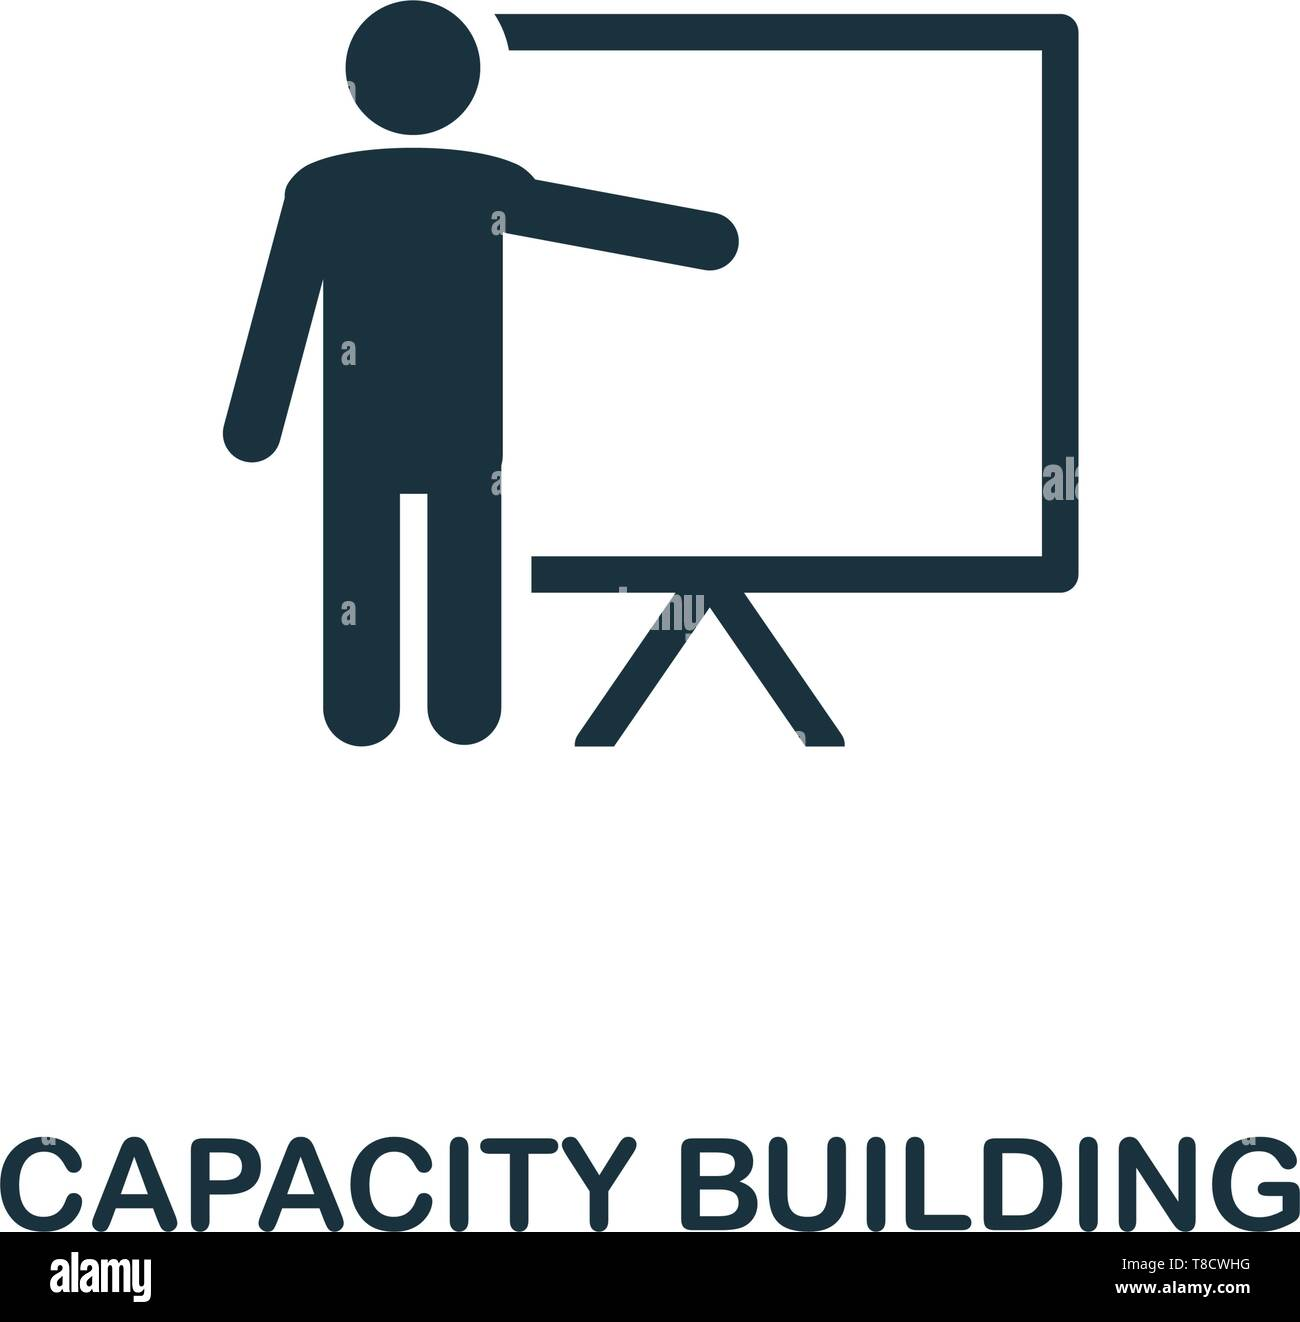 Capacity Building icon. Creative element design from business strategy icons collection. Pixel perfect Capacity Building icon for web design, apps, so - Stock Vector